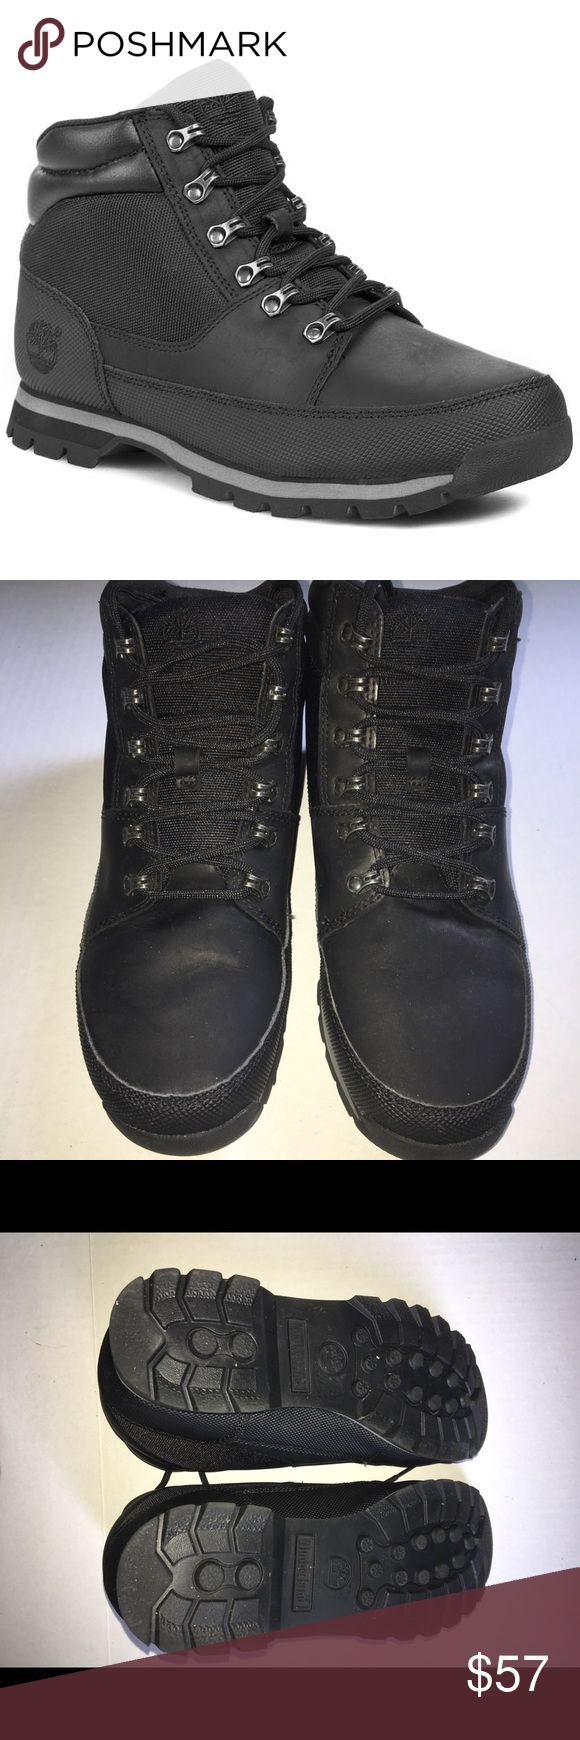 Timberland Euro Sprint Hiker Boots Timberland Men's Black Boots. Style: Euro Sprint Condition is like new. Description: Solid black model from Timberland. The upper part is produced from genuine leather - full grain leather, fabric. Shop with confidence 🌟 5 STAR ratings Most items SHIP NEXT DAY.                                           Use the BUNDLE feature for discount. Timberland Shoes Boots